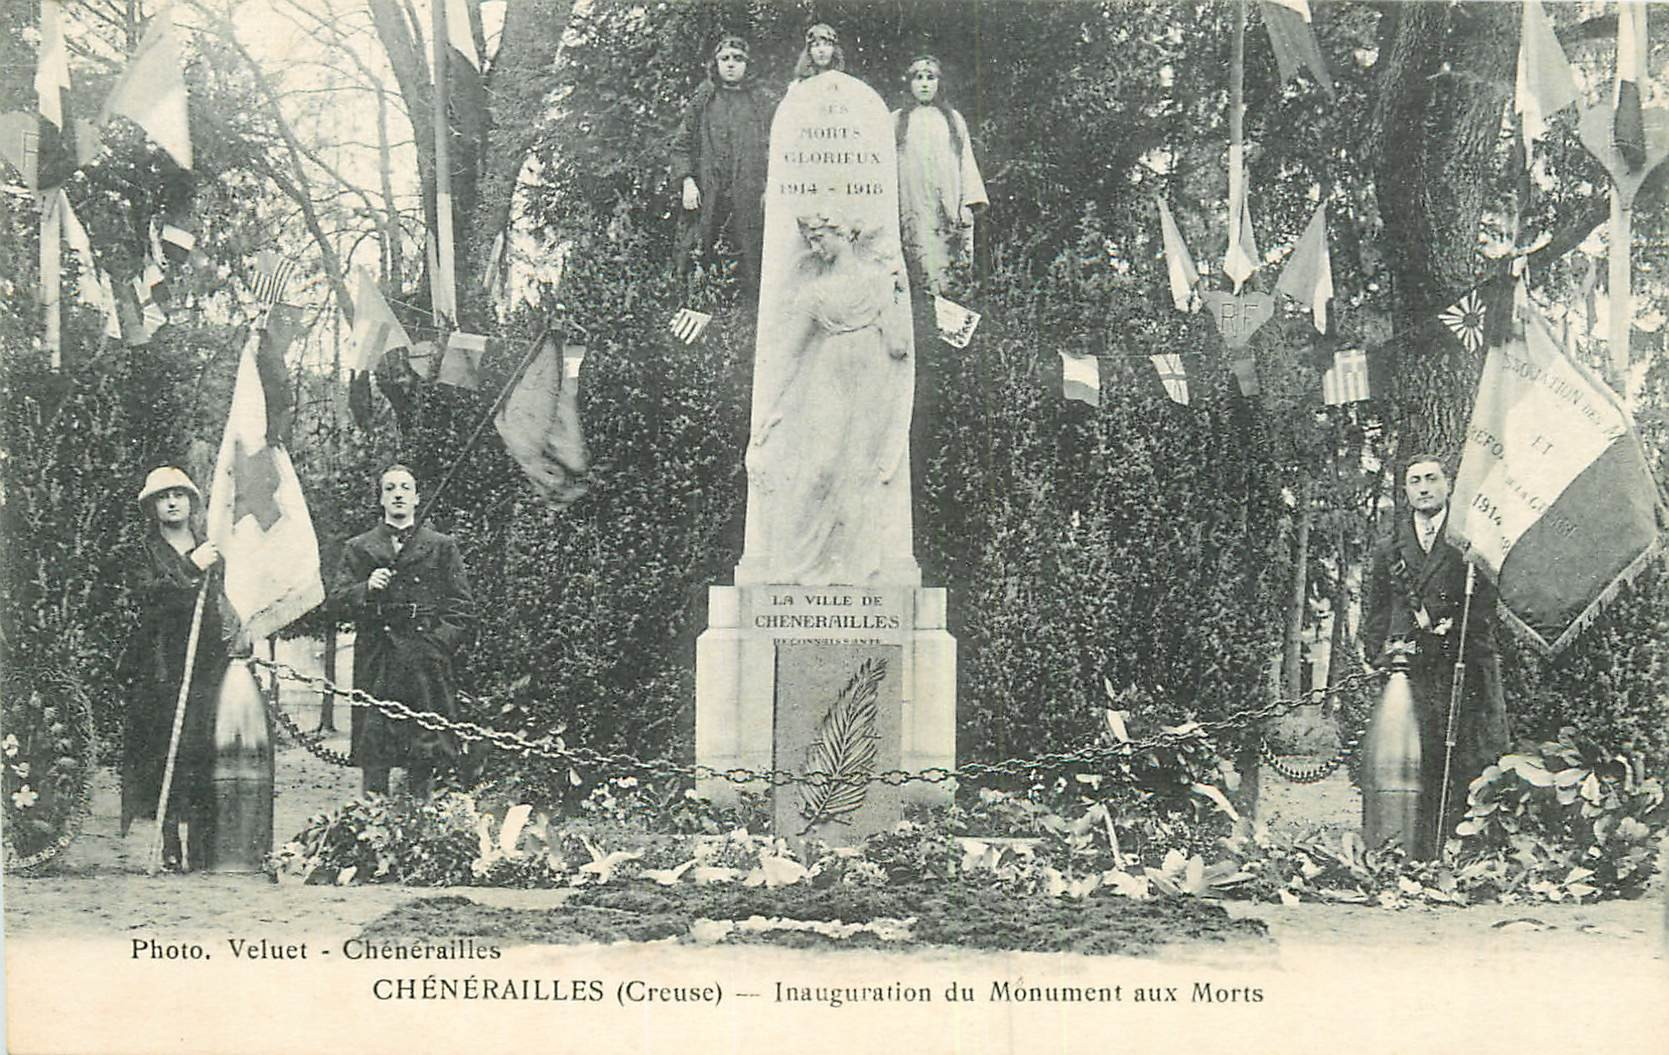 WW 23 CHENERAILLES. Inauguration Monument aux Morts